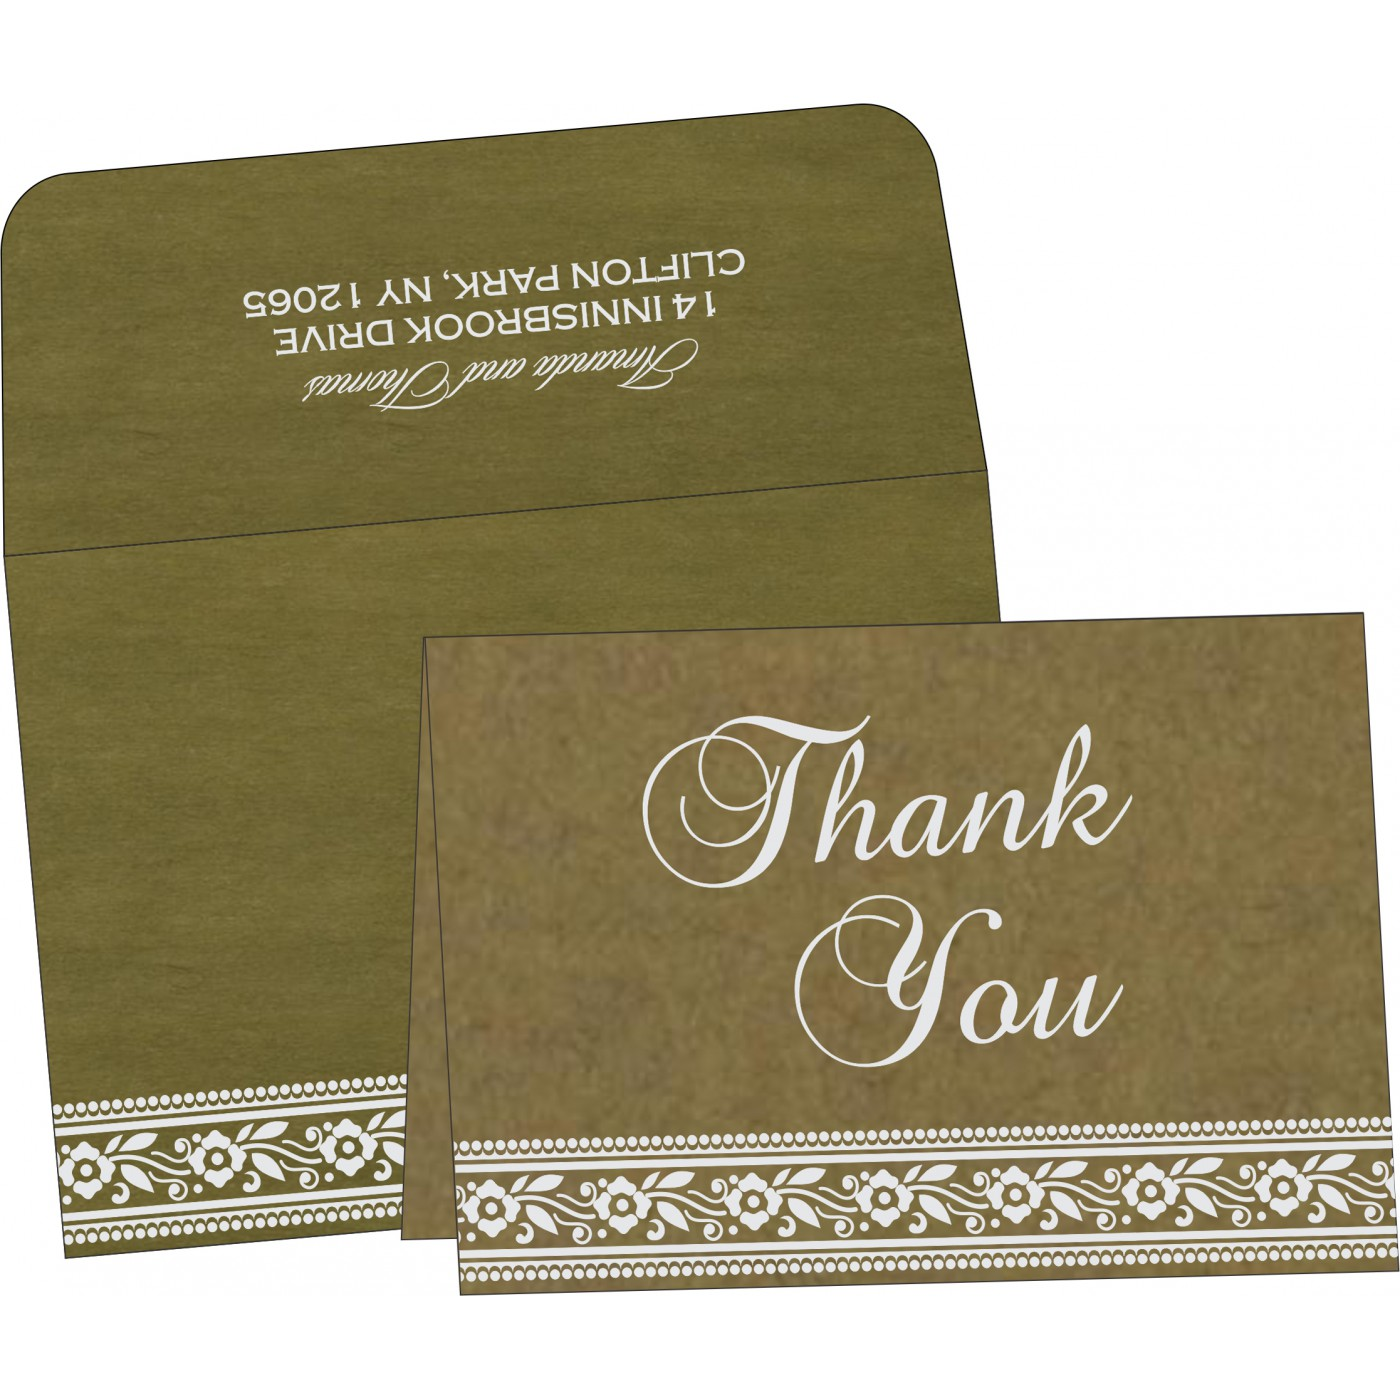 Thank You Cards - TYC-8220Q